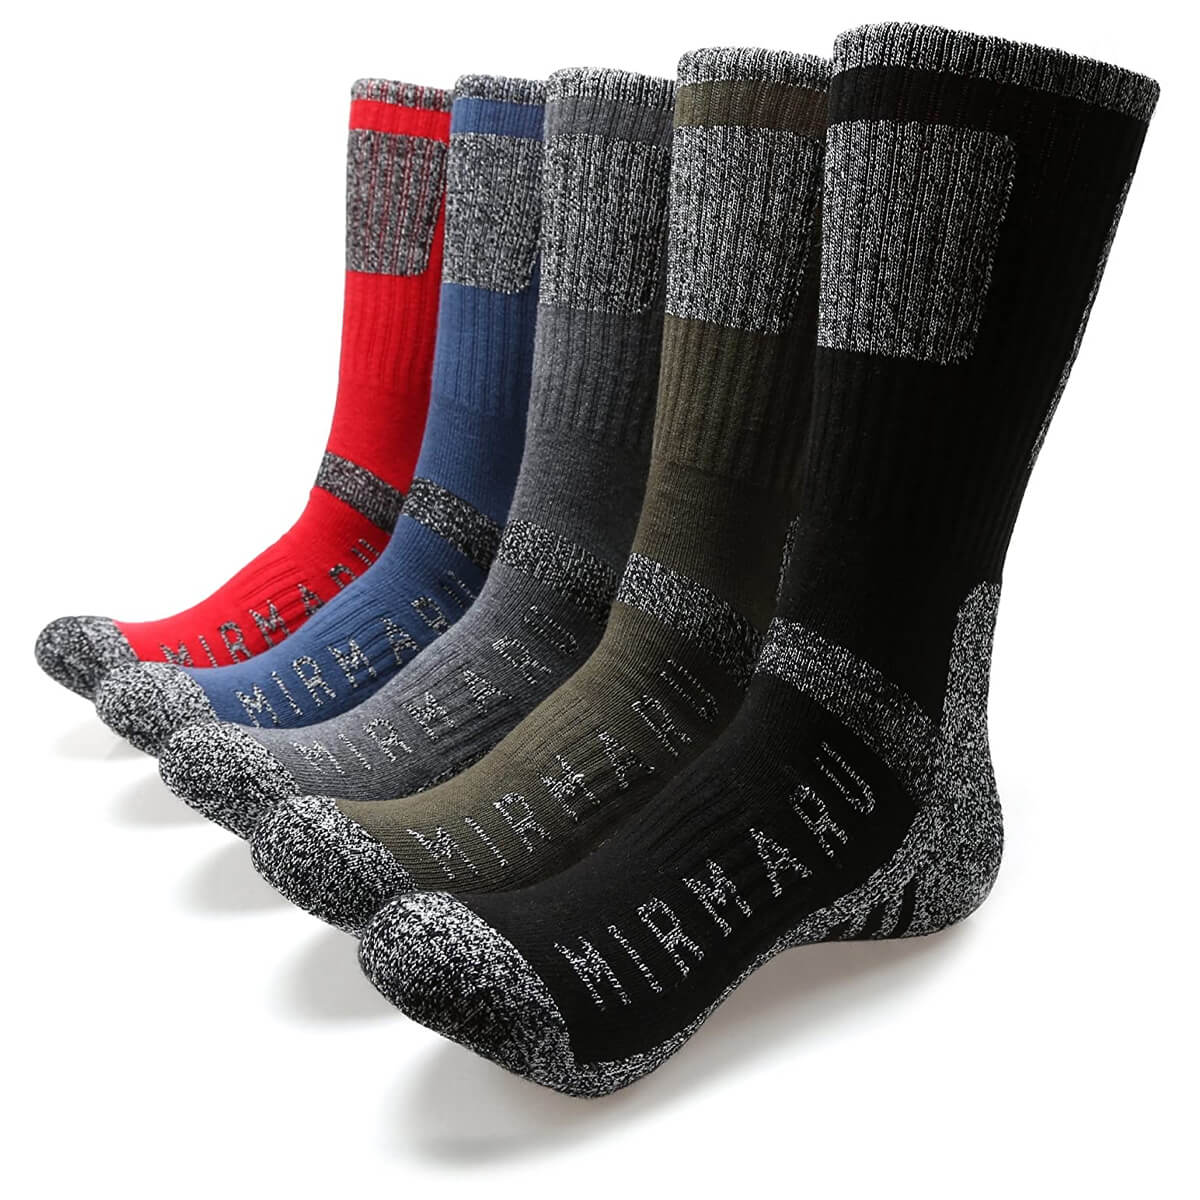 Mirmaru Men's Performance Socks